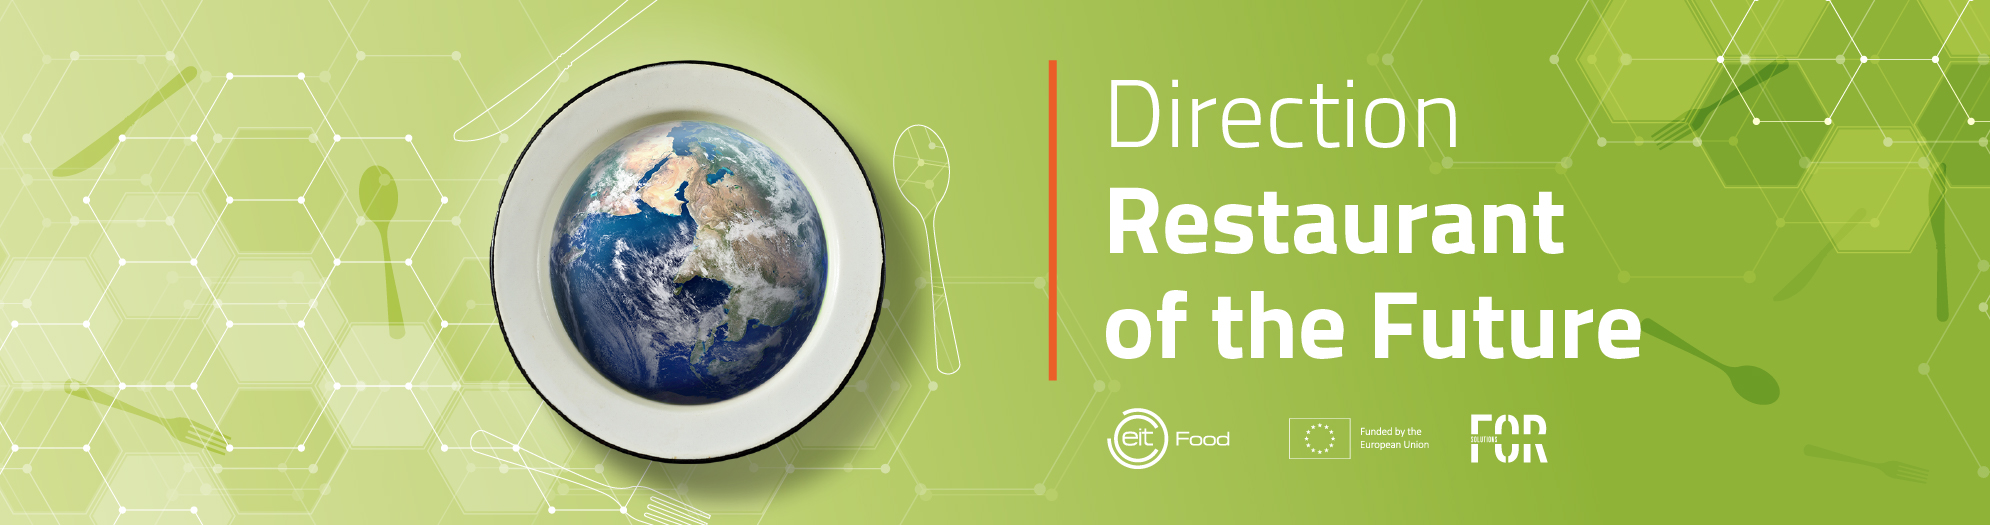 Direction Restaurant of the Future